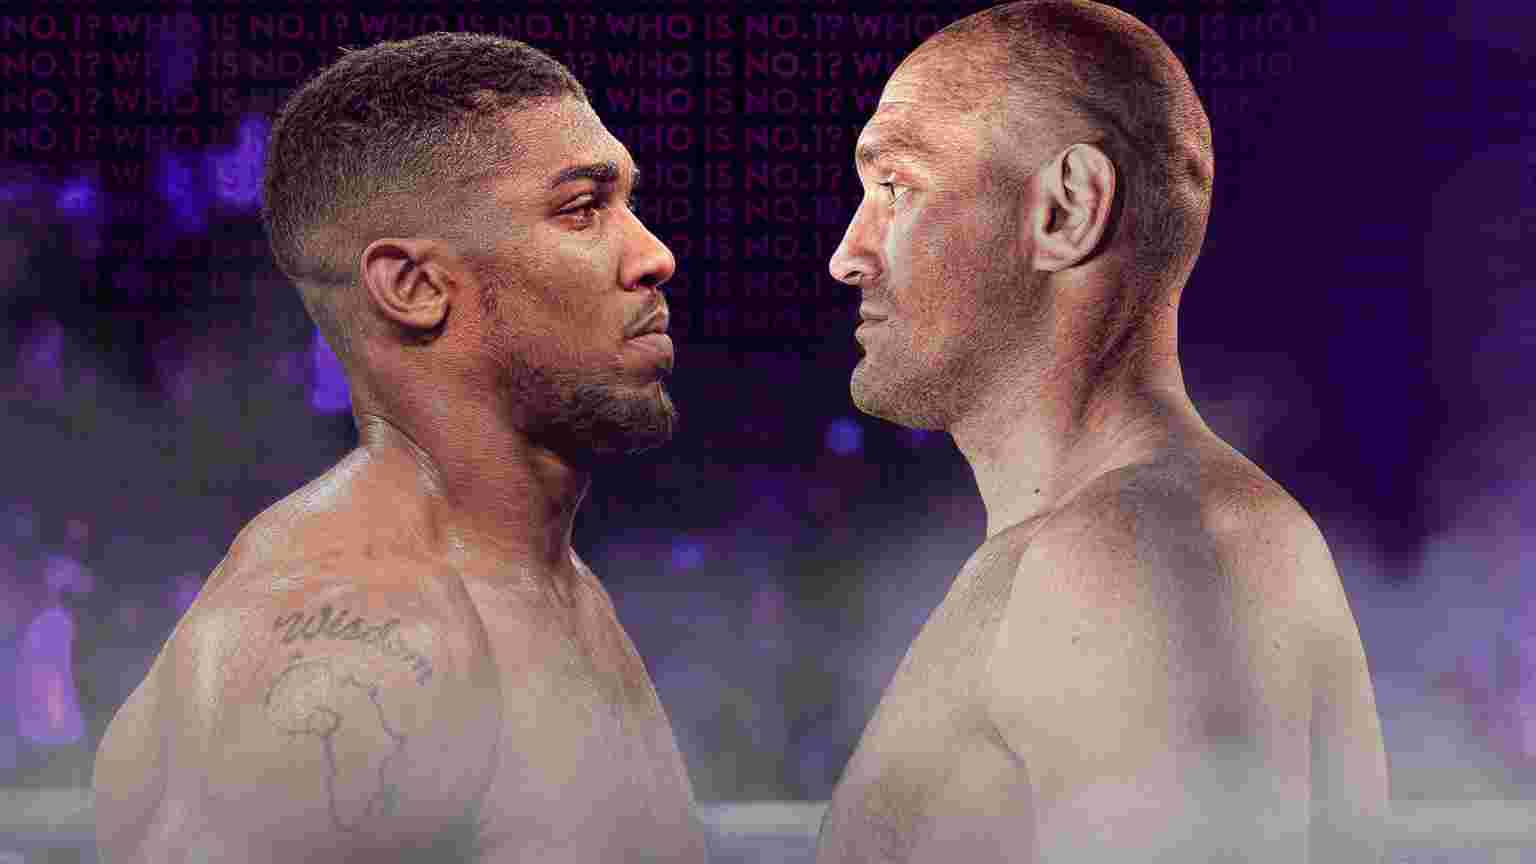 Anthony Joshua vs Tyson Fury: Mike Tyson Predicts Winner of Heavyweight Fight